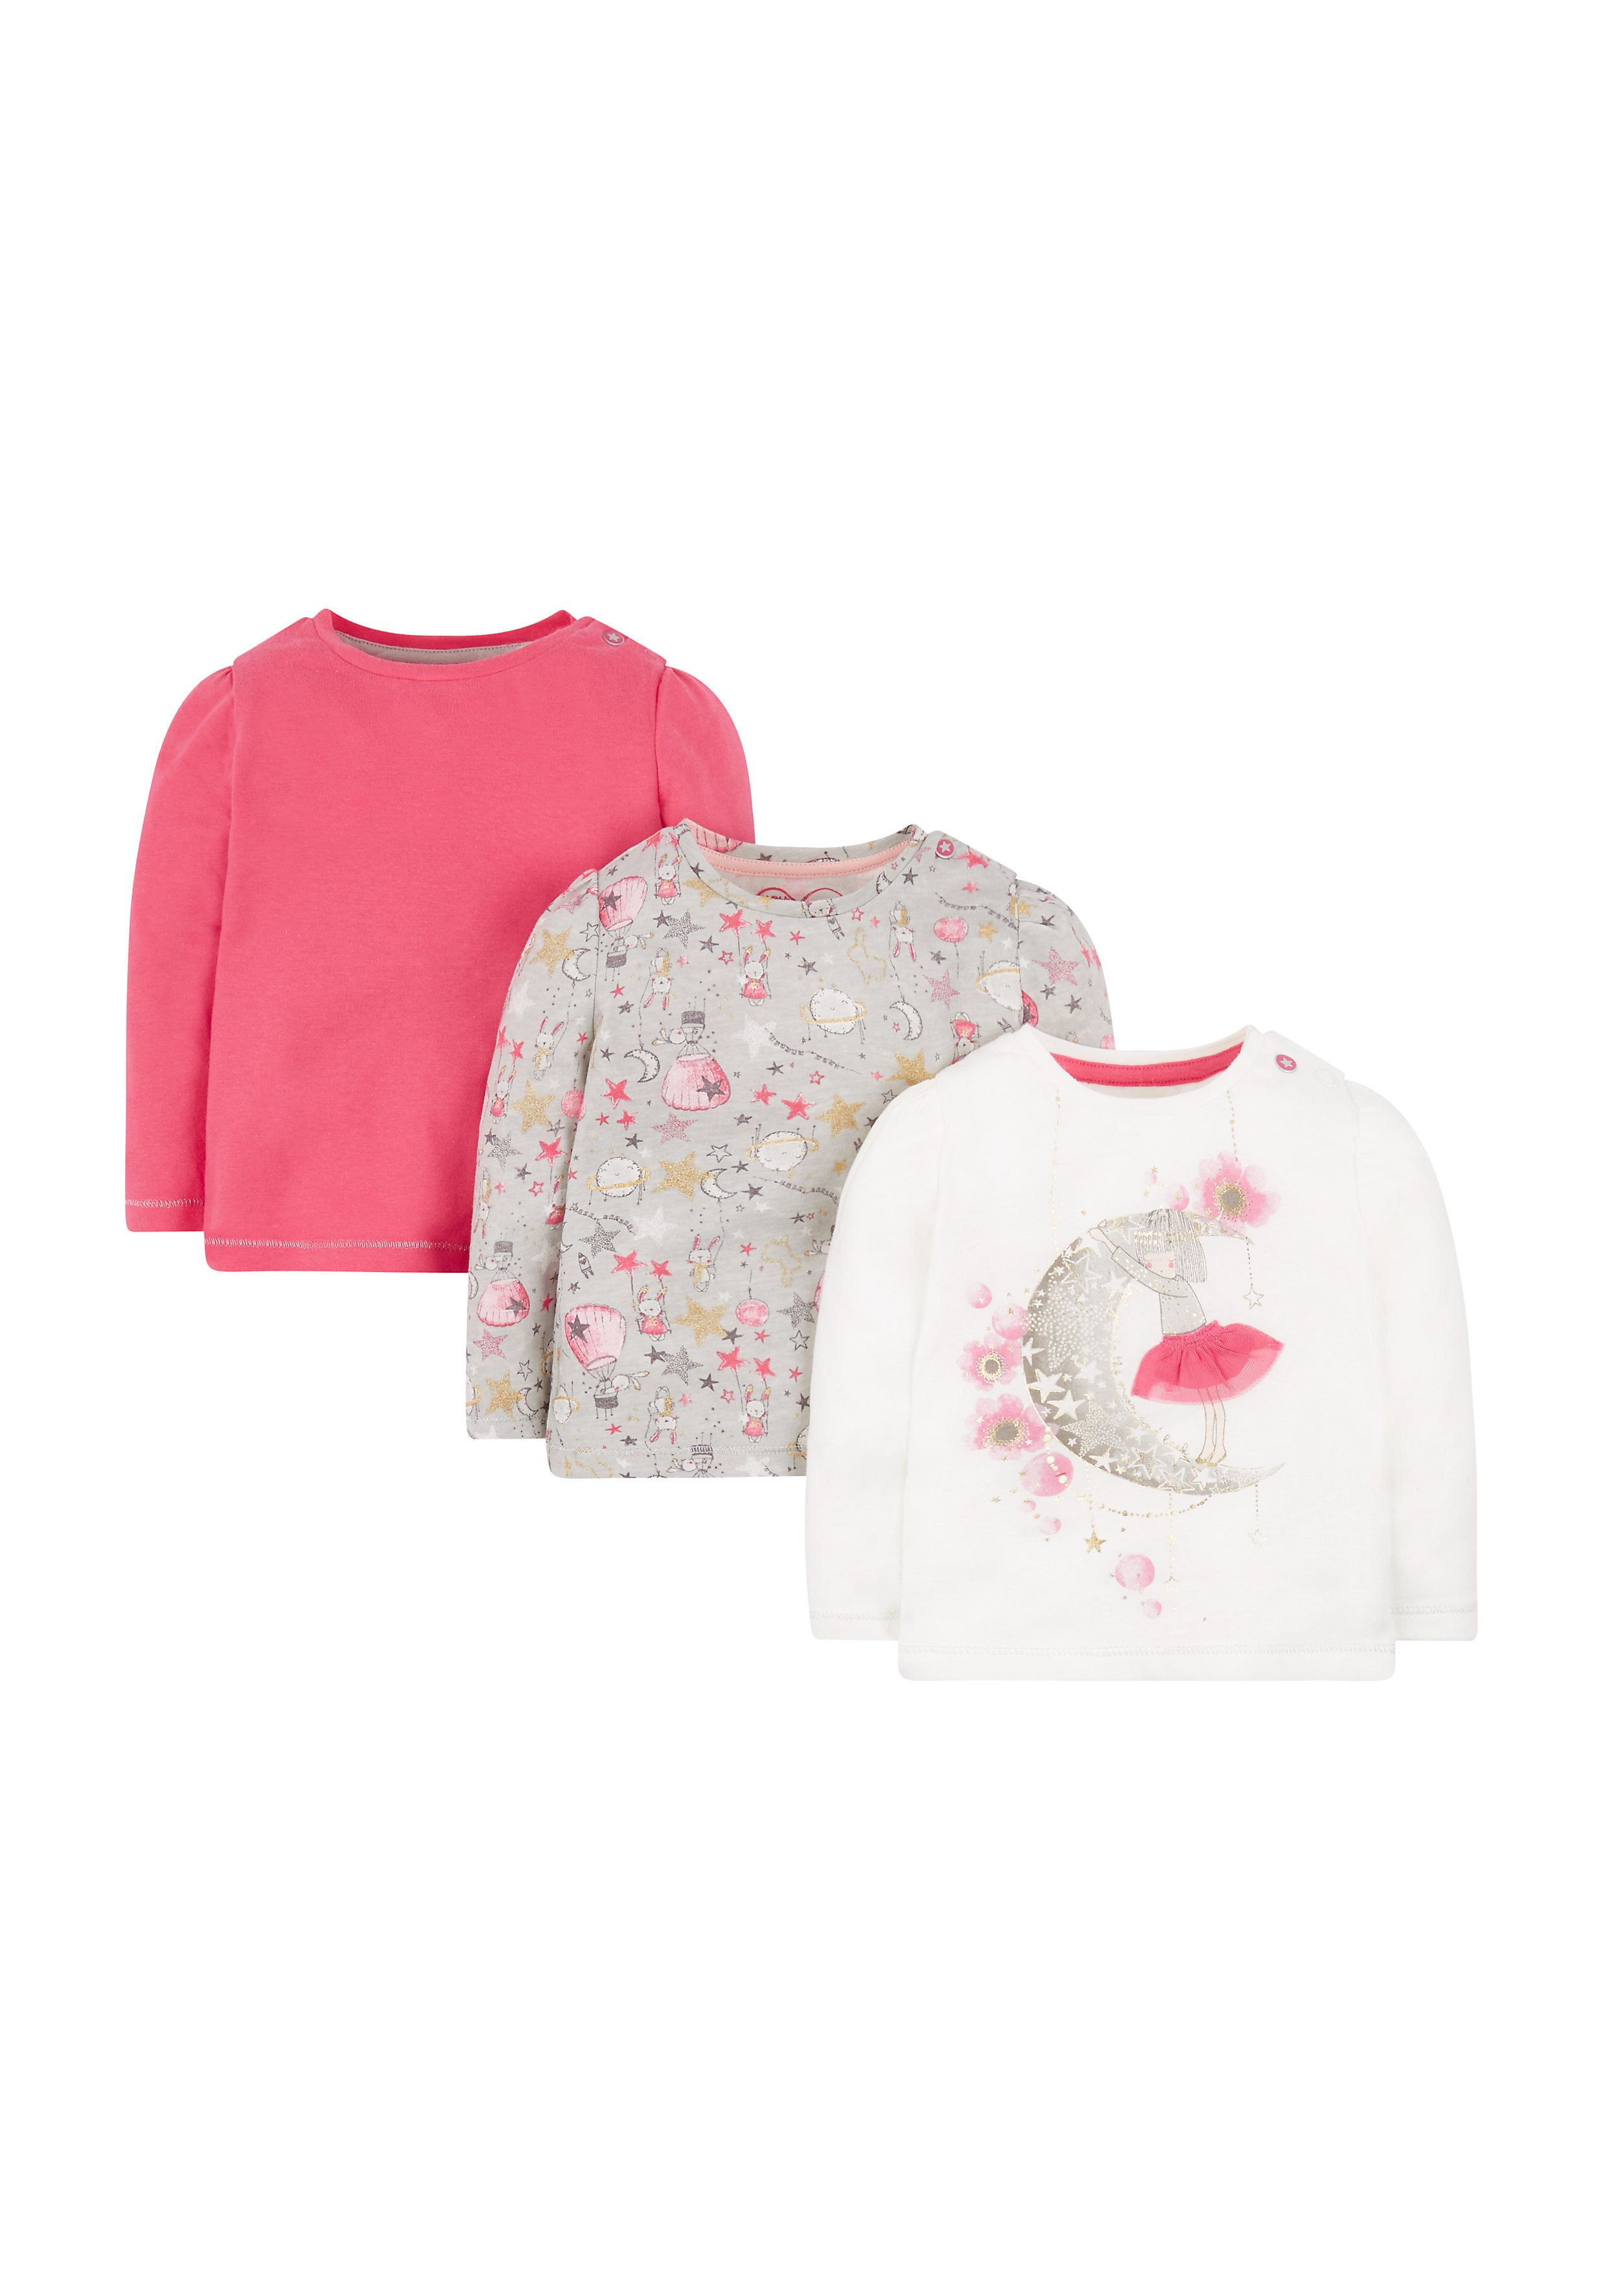 Mothercare   Love You To The Moon And Back T-Shirts - 3 Pack